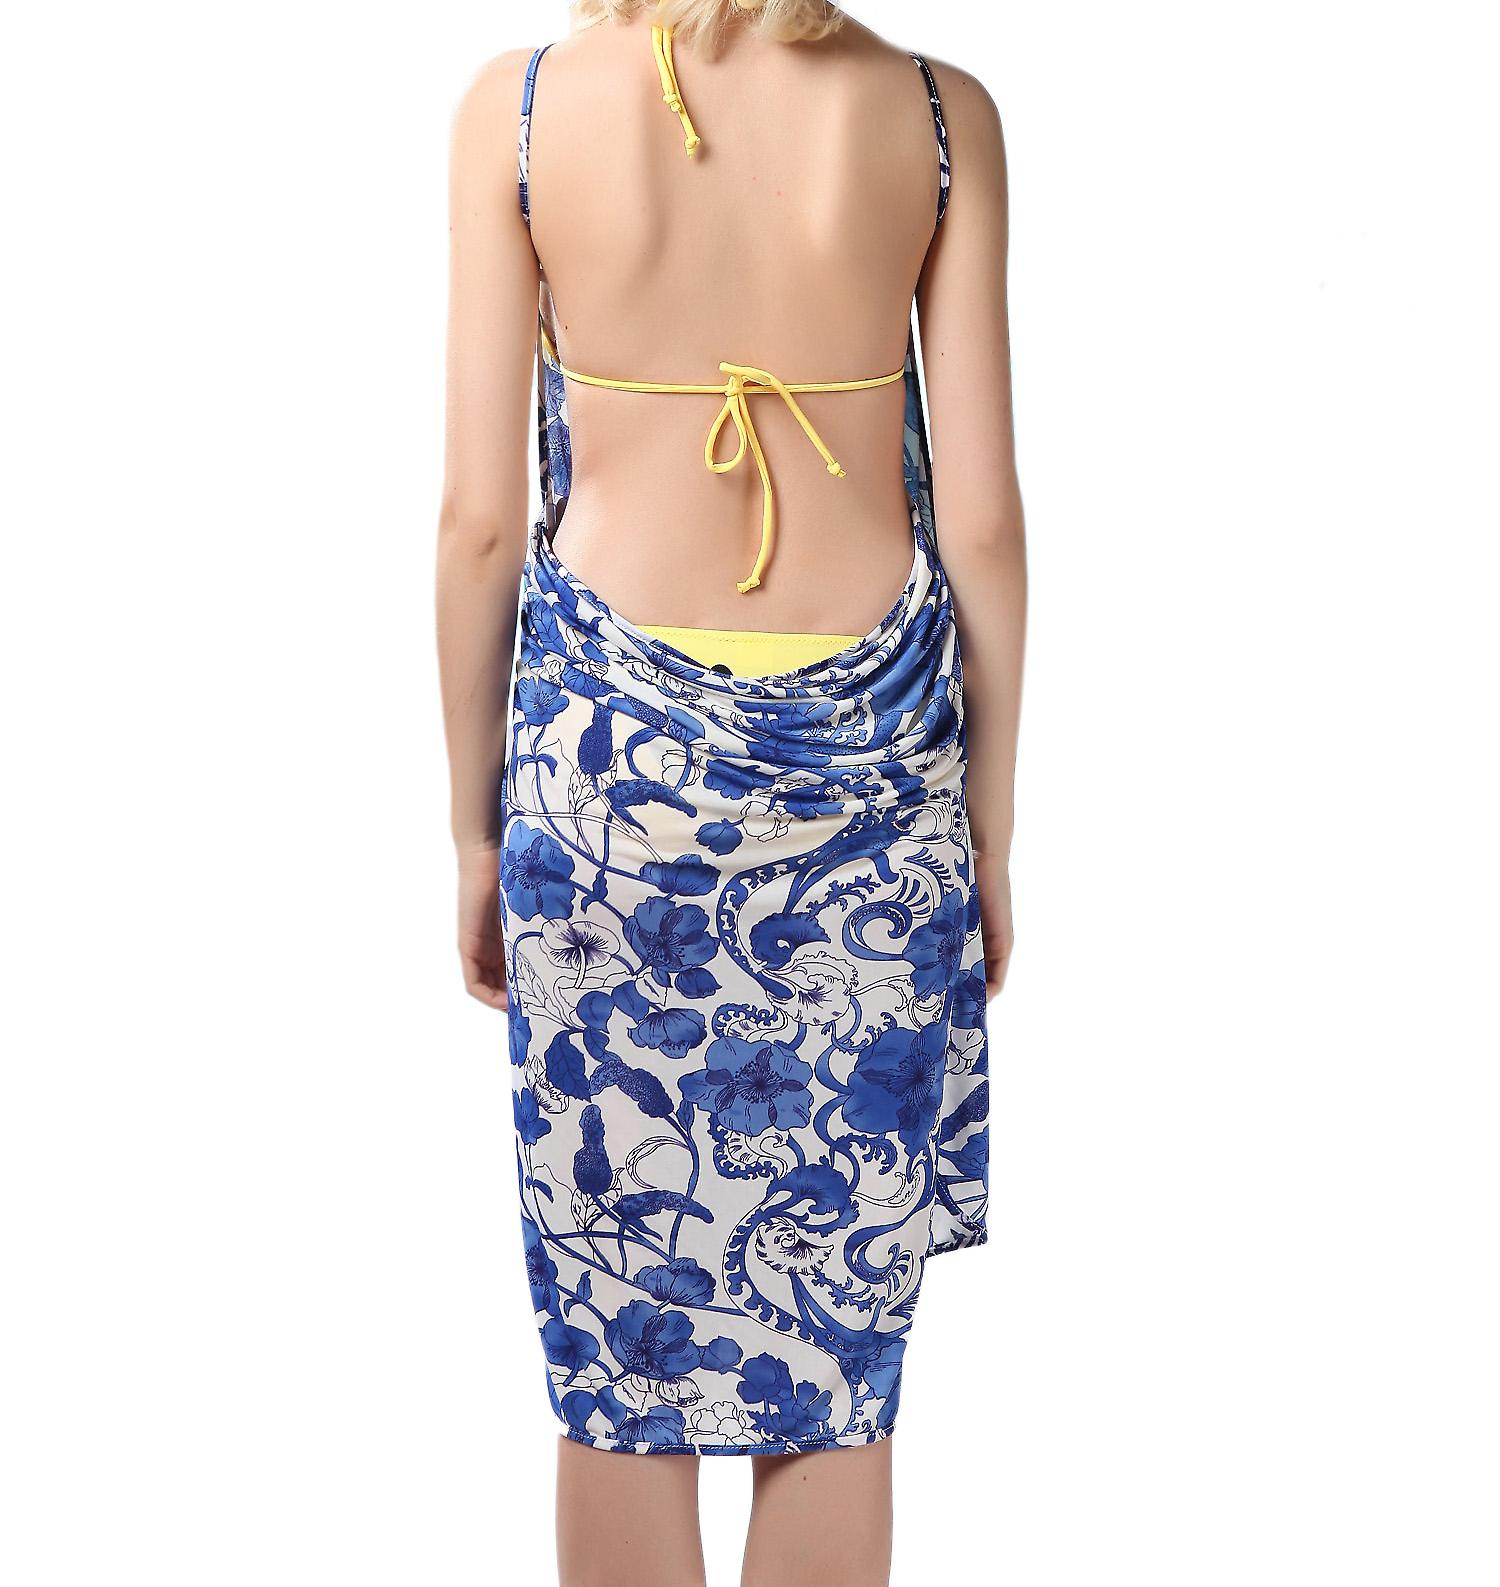 Waooh - Fashion - Sarong with floral prints